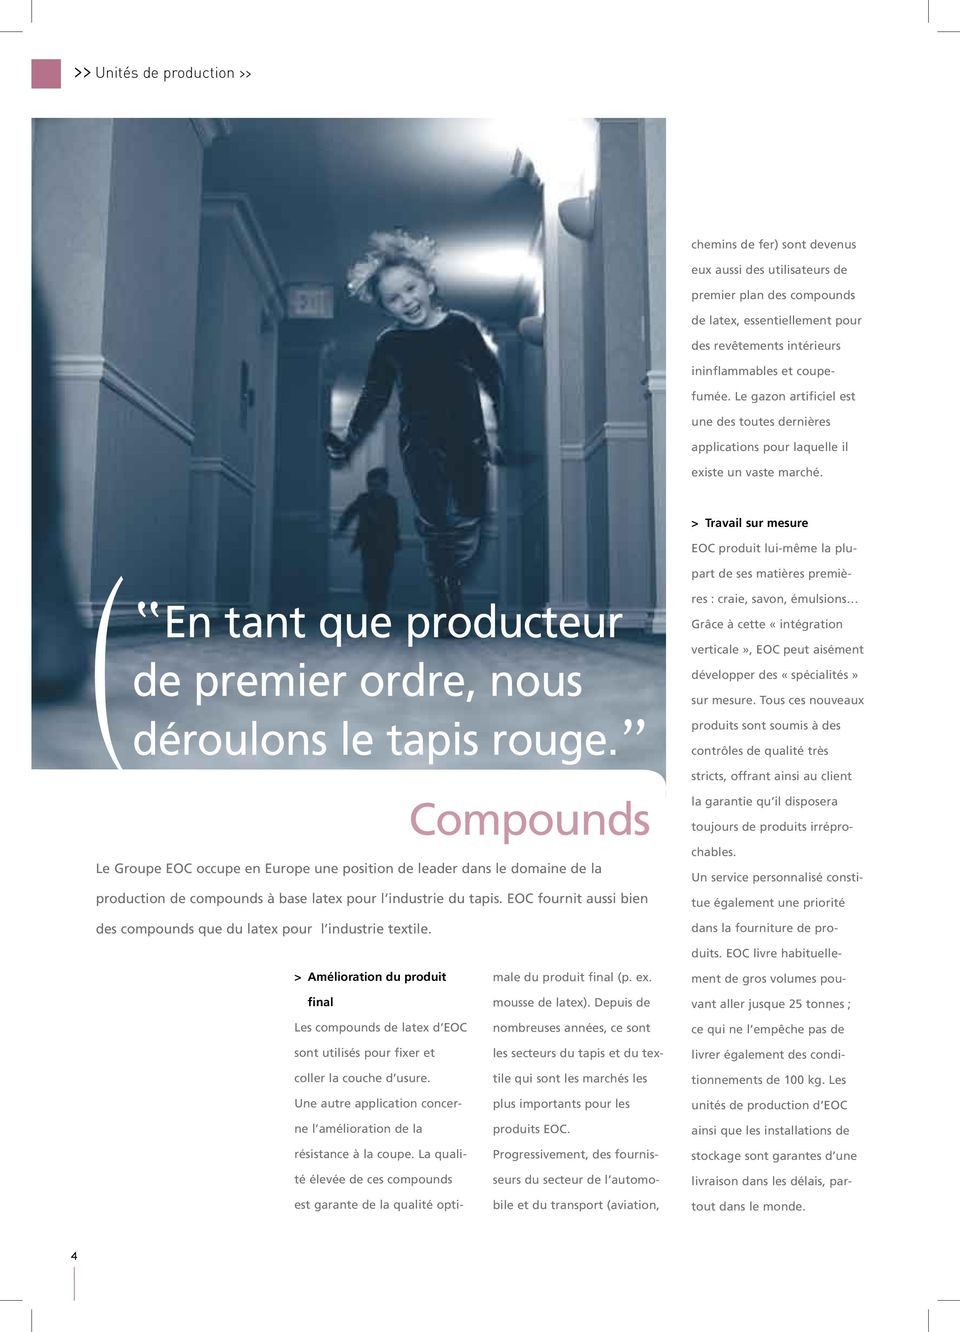 Compounds Le Groupe EOC occupe en Europe une position de leader dans le domaine de la production de compounds à base latex pour l industrie du tapis.